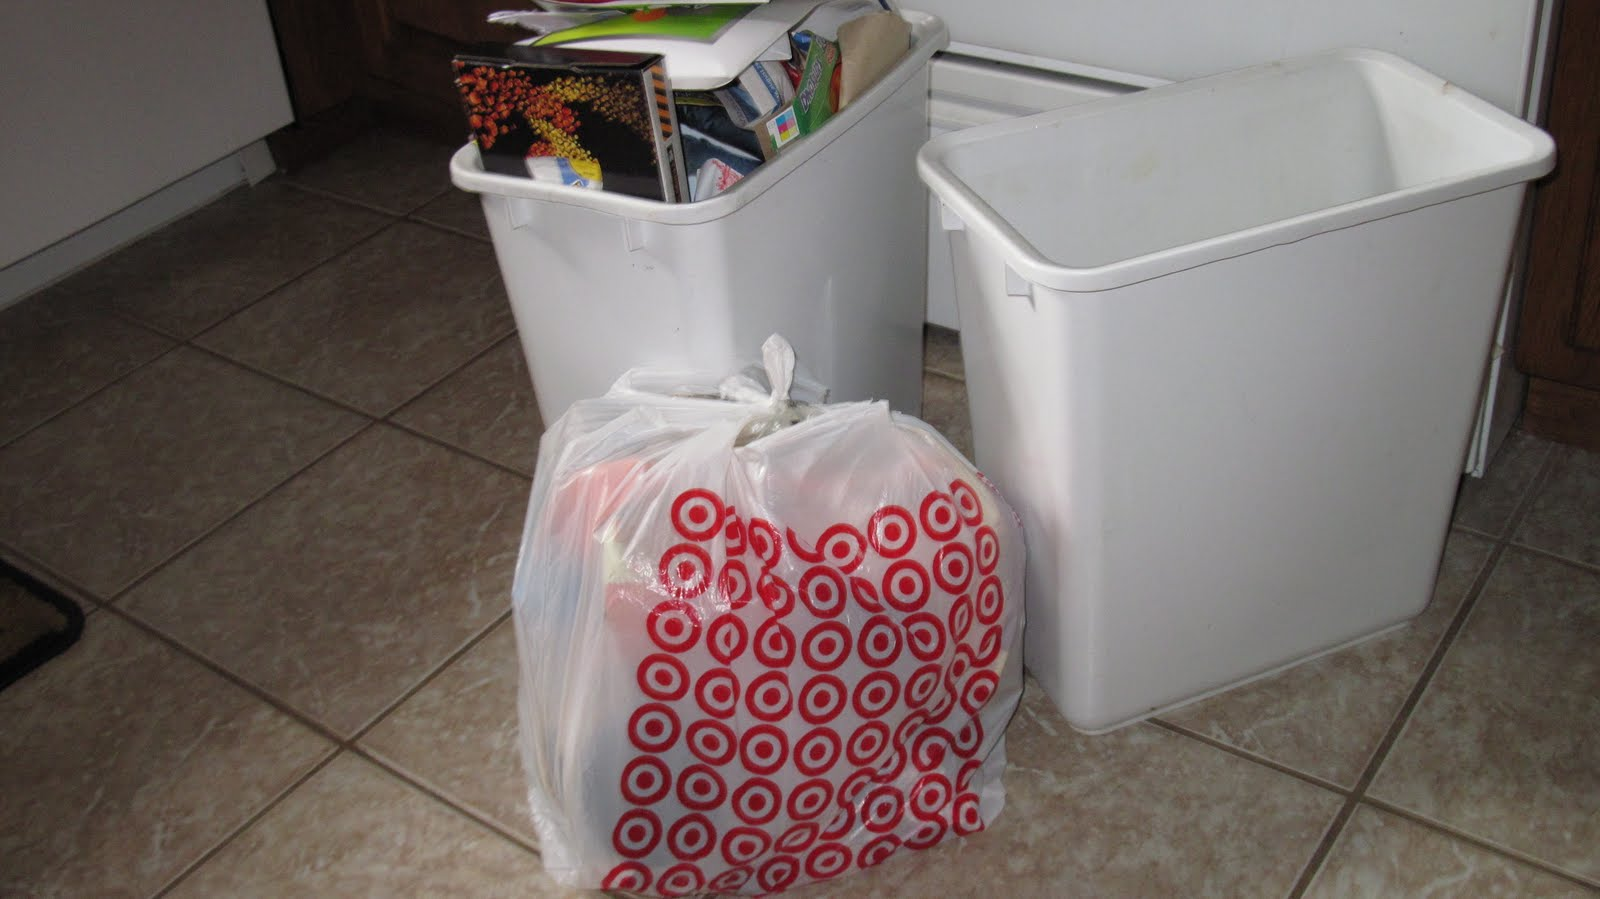 Kitchen Trash Bin Target: Simple Green $avings: Being Green With Plastic Bags